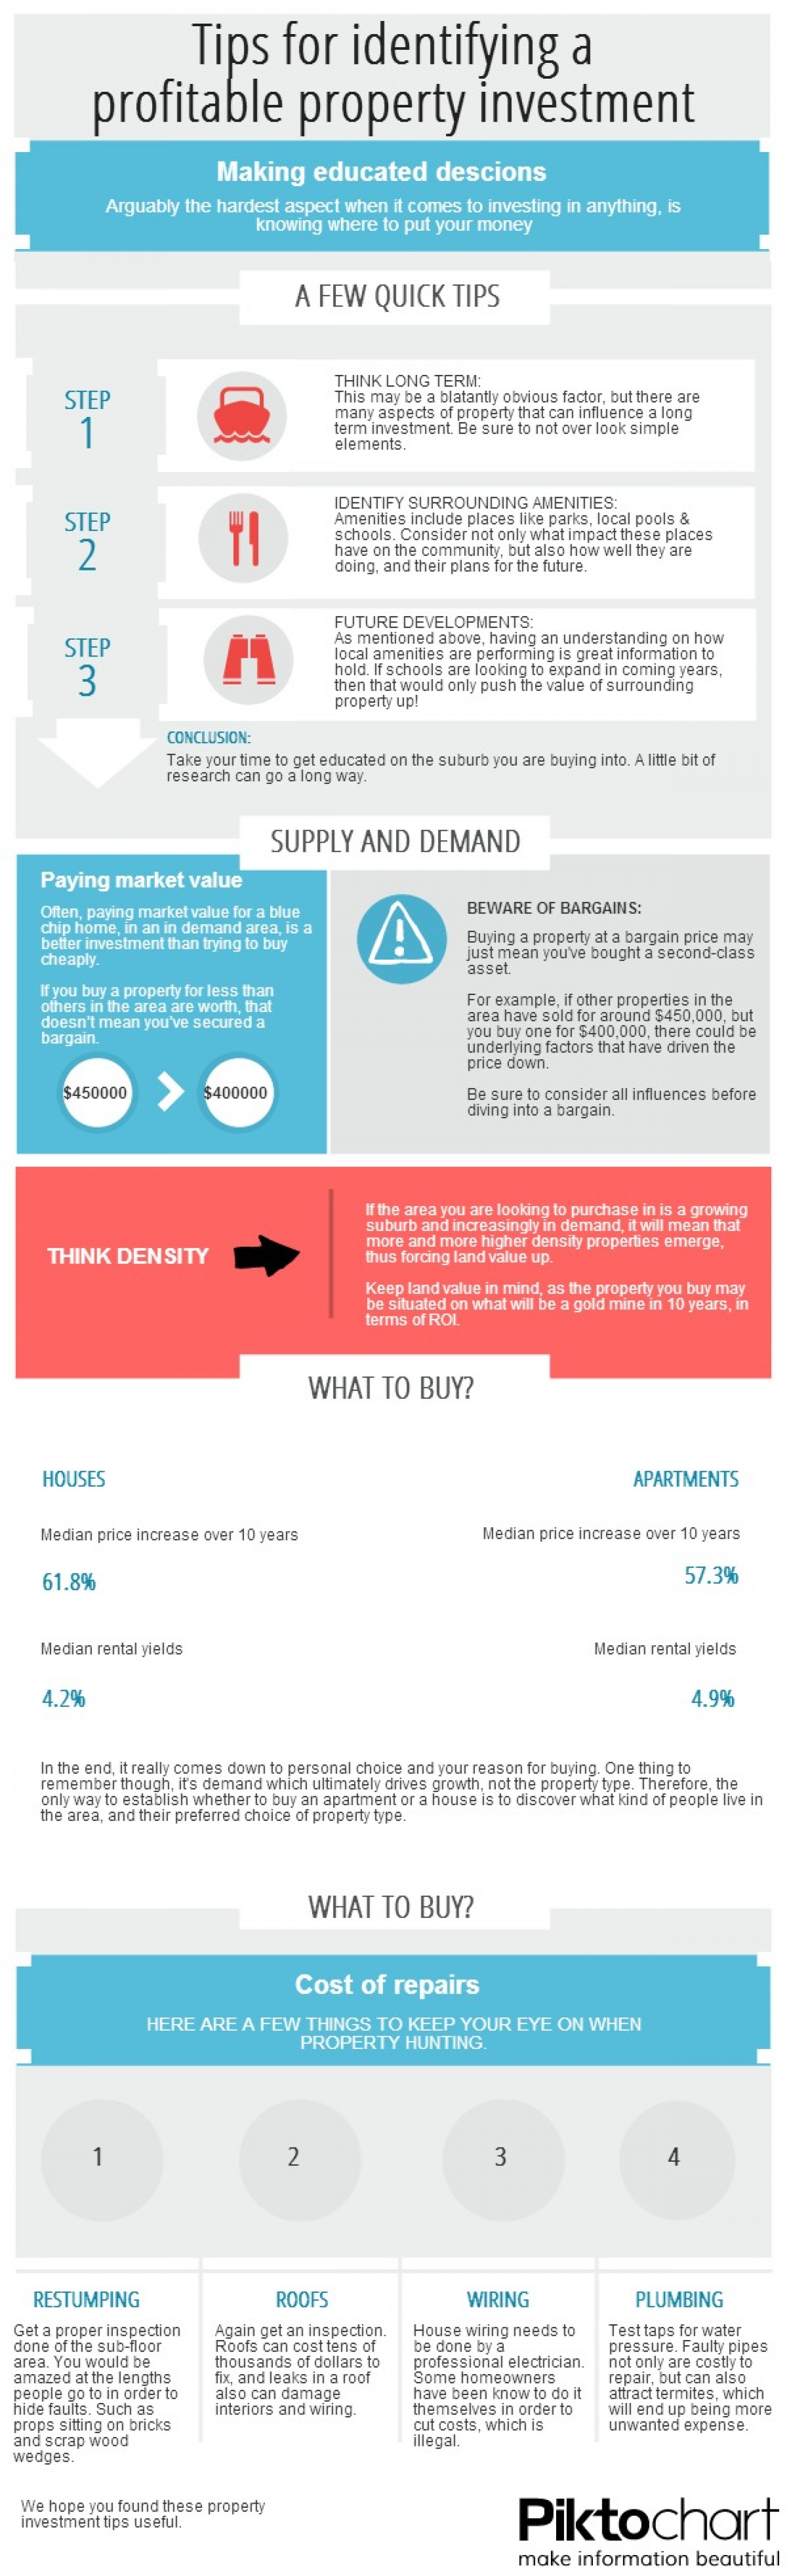 Tips for identifying a profitable property investment Infographic